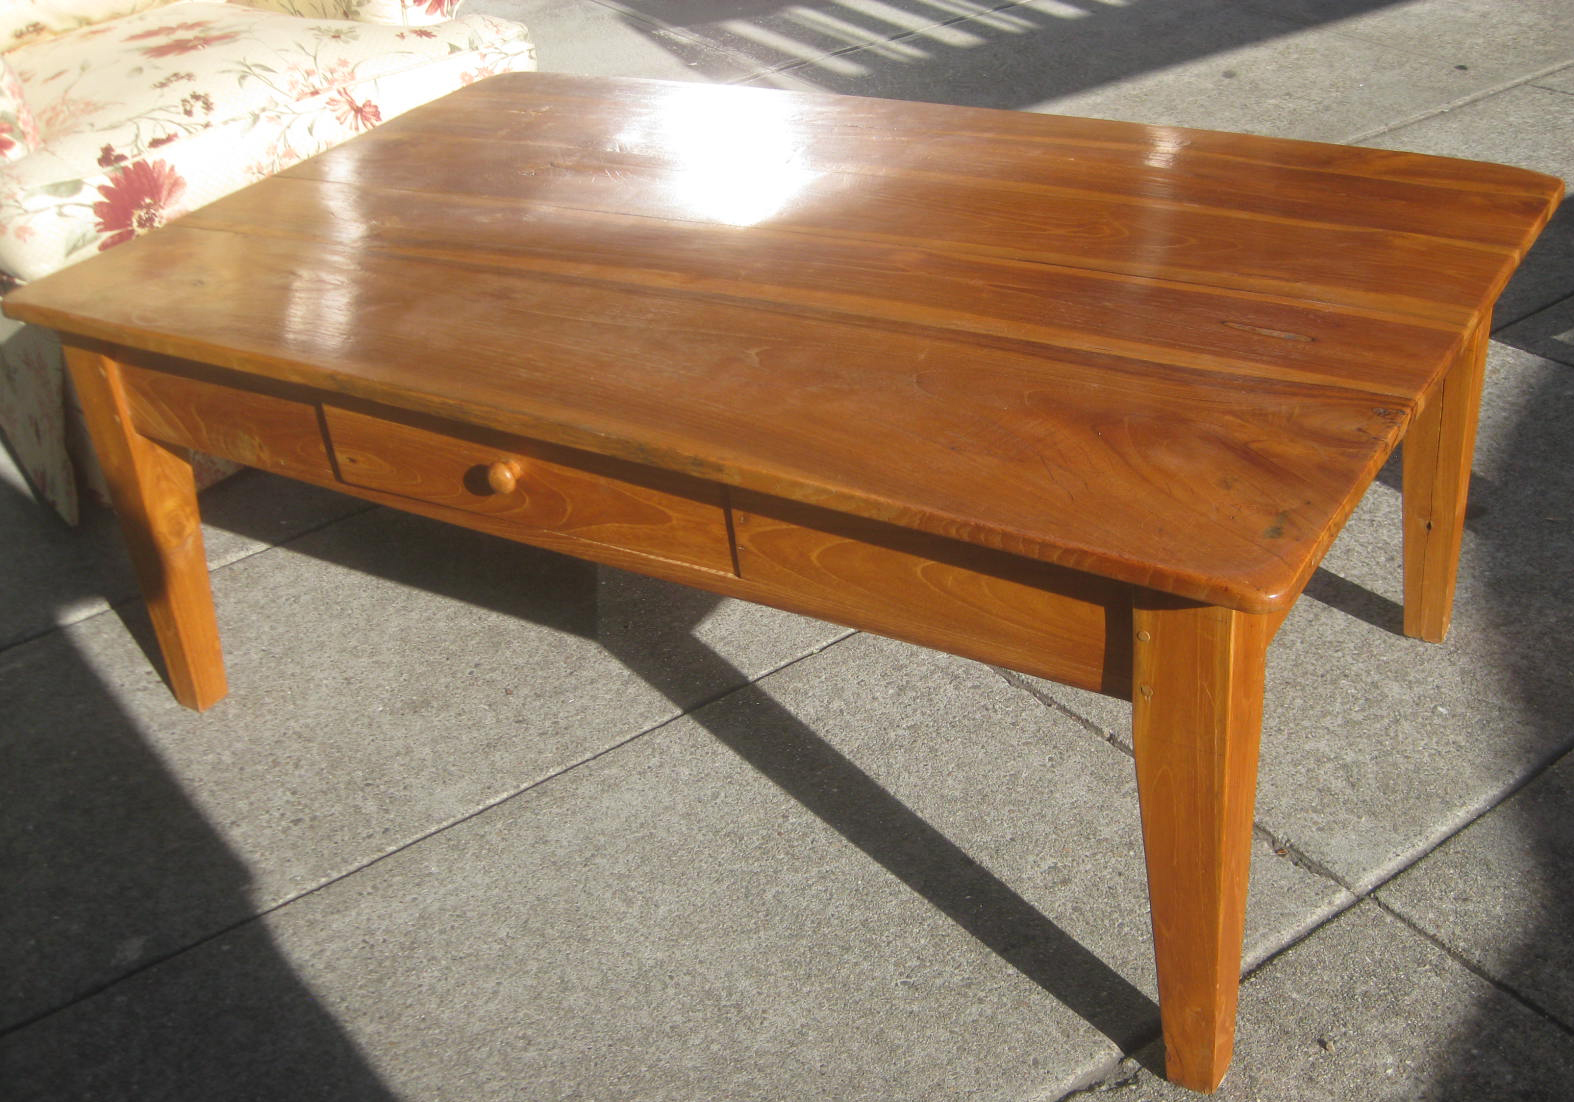 Uhuru Furniture Collectibles Sold Solid Teak Coffee Table 120